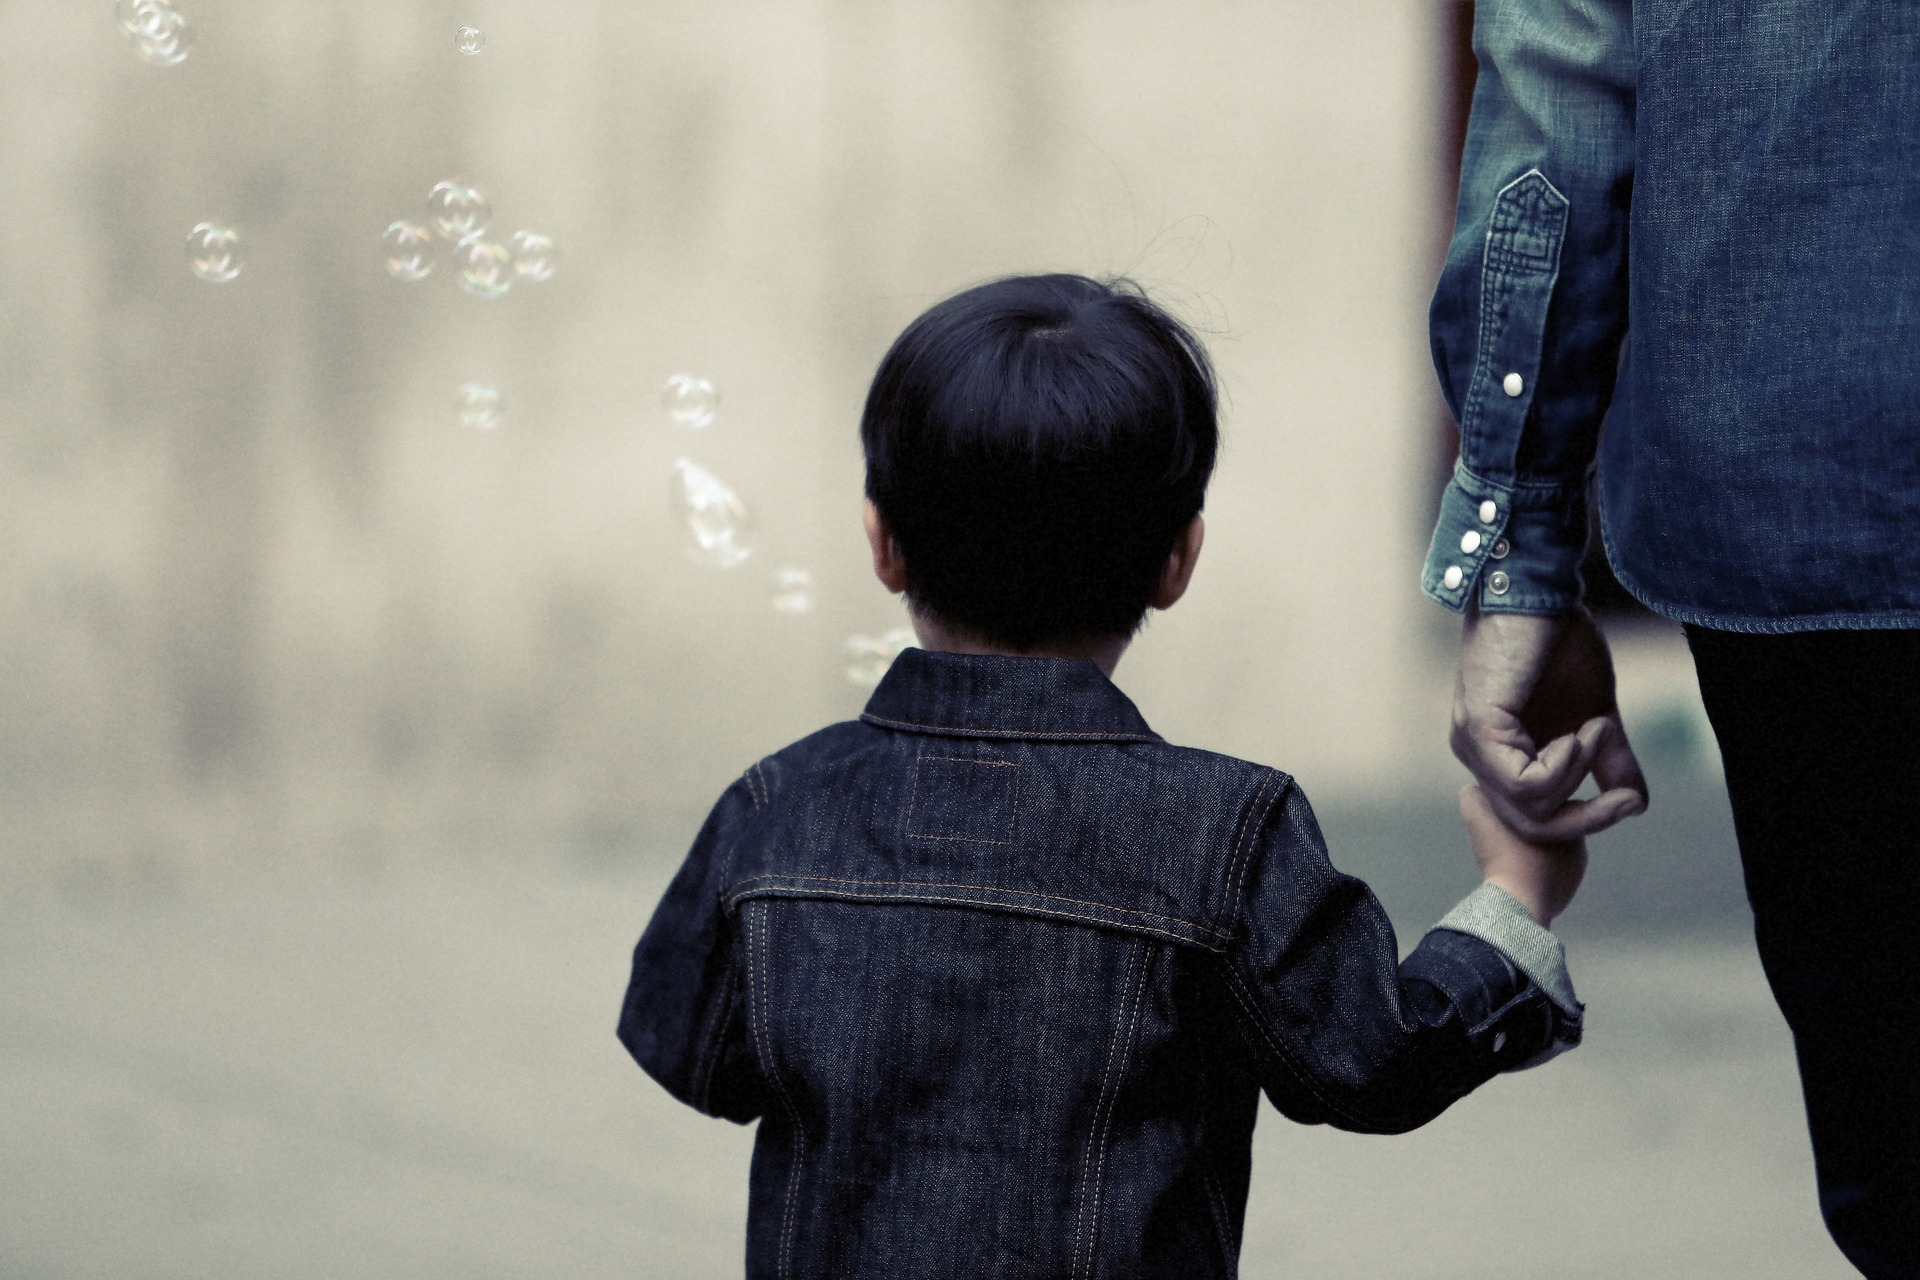 Growing up in a single parent home essay